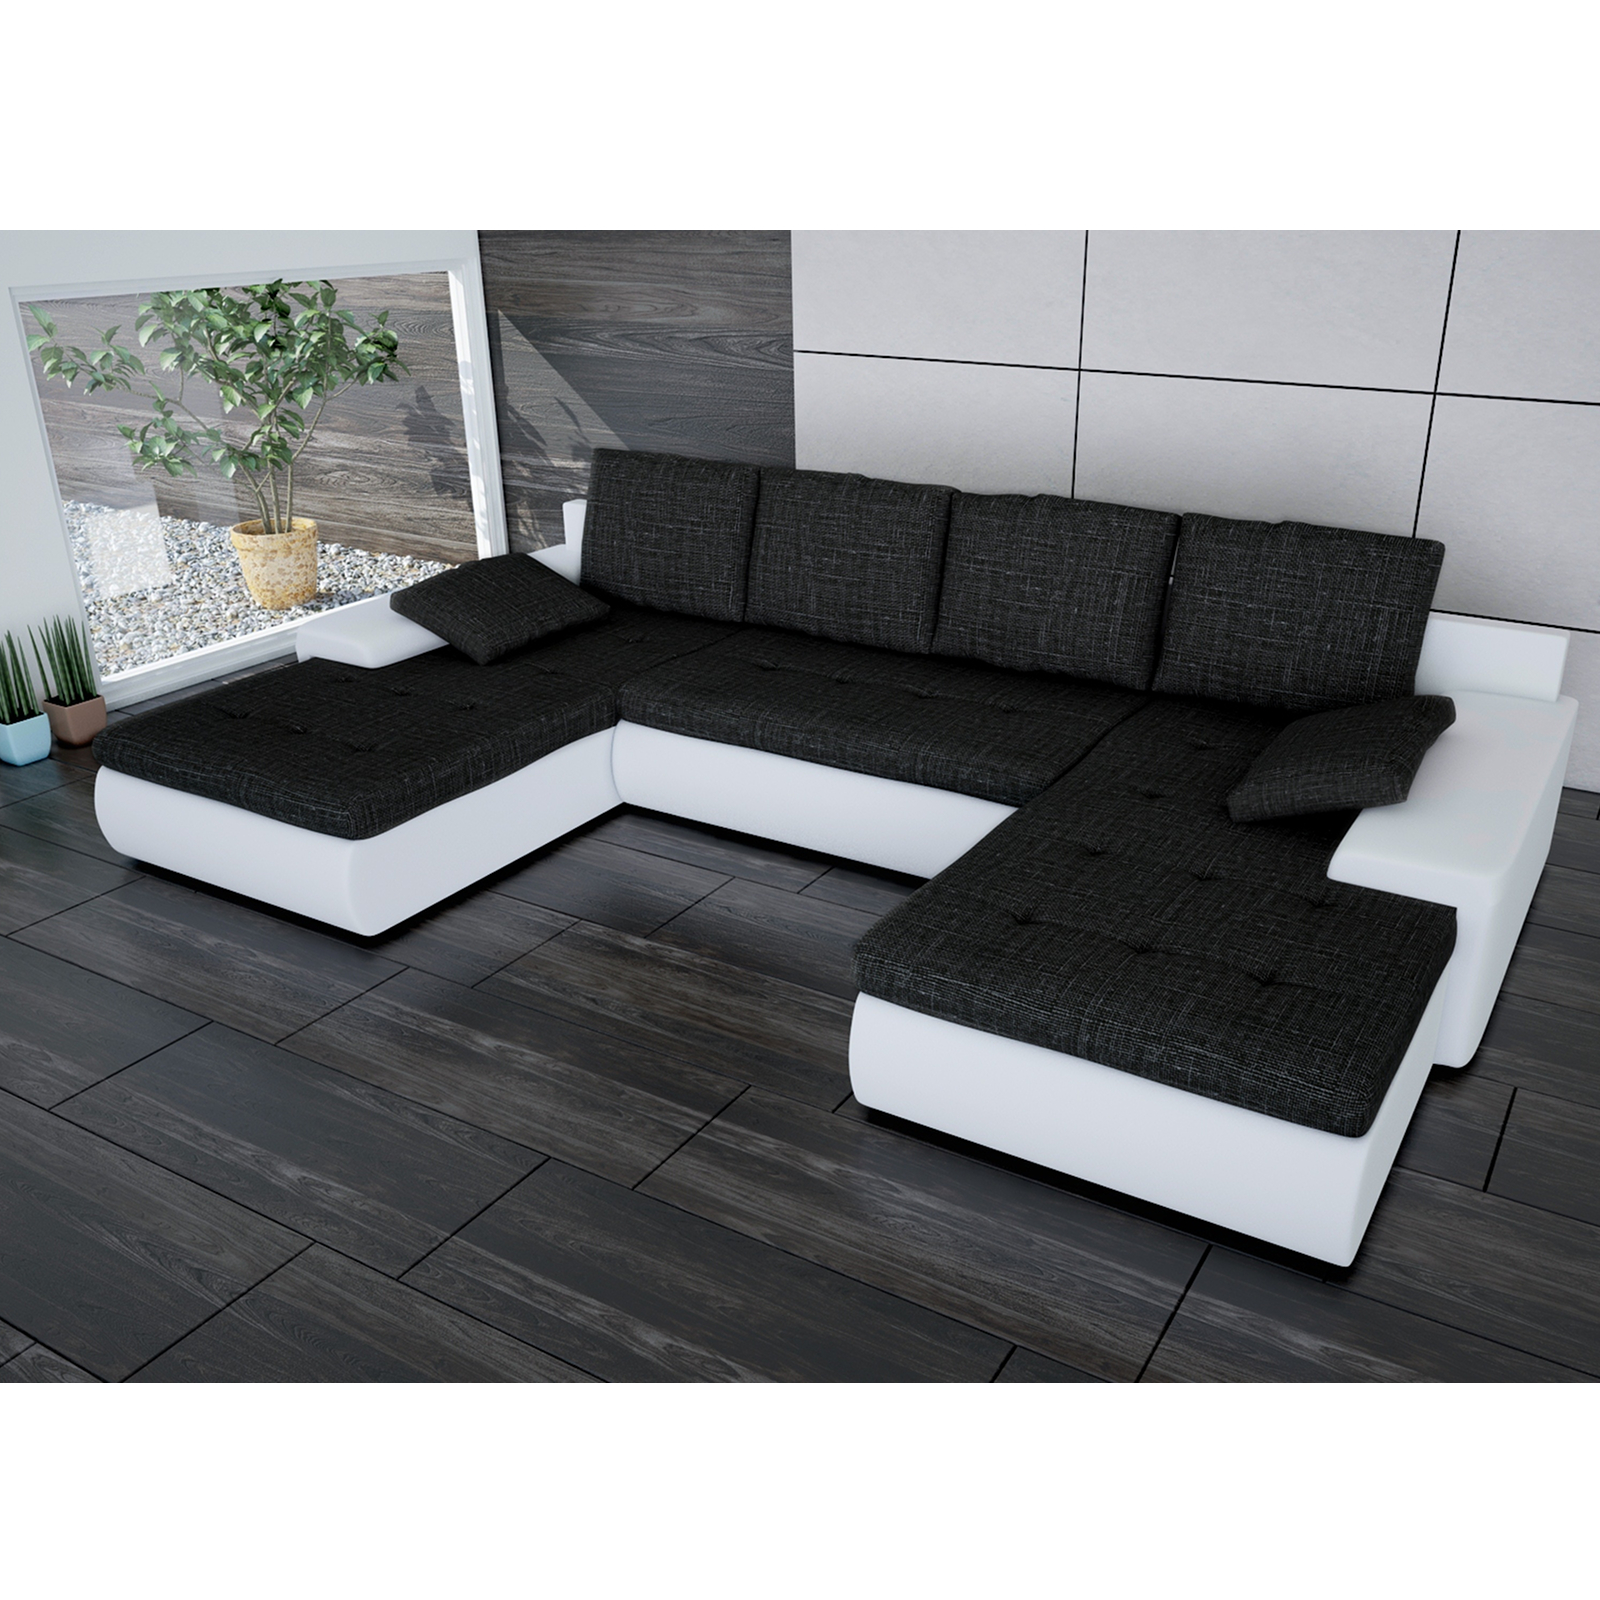 sofa linosa wei schwarz ecksofa von jalano wohnlandschaft u form schlaf couch ebay. Black Bedroom Furniture Sets. Home Design Ideas